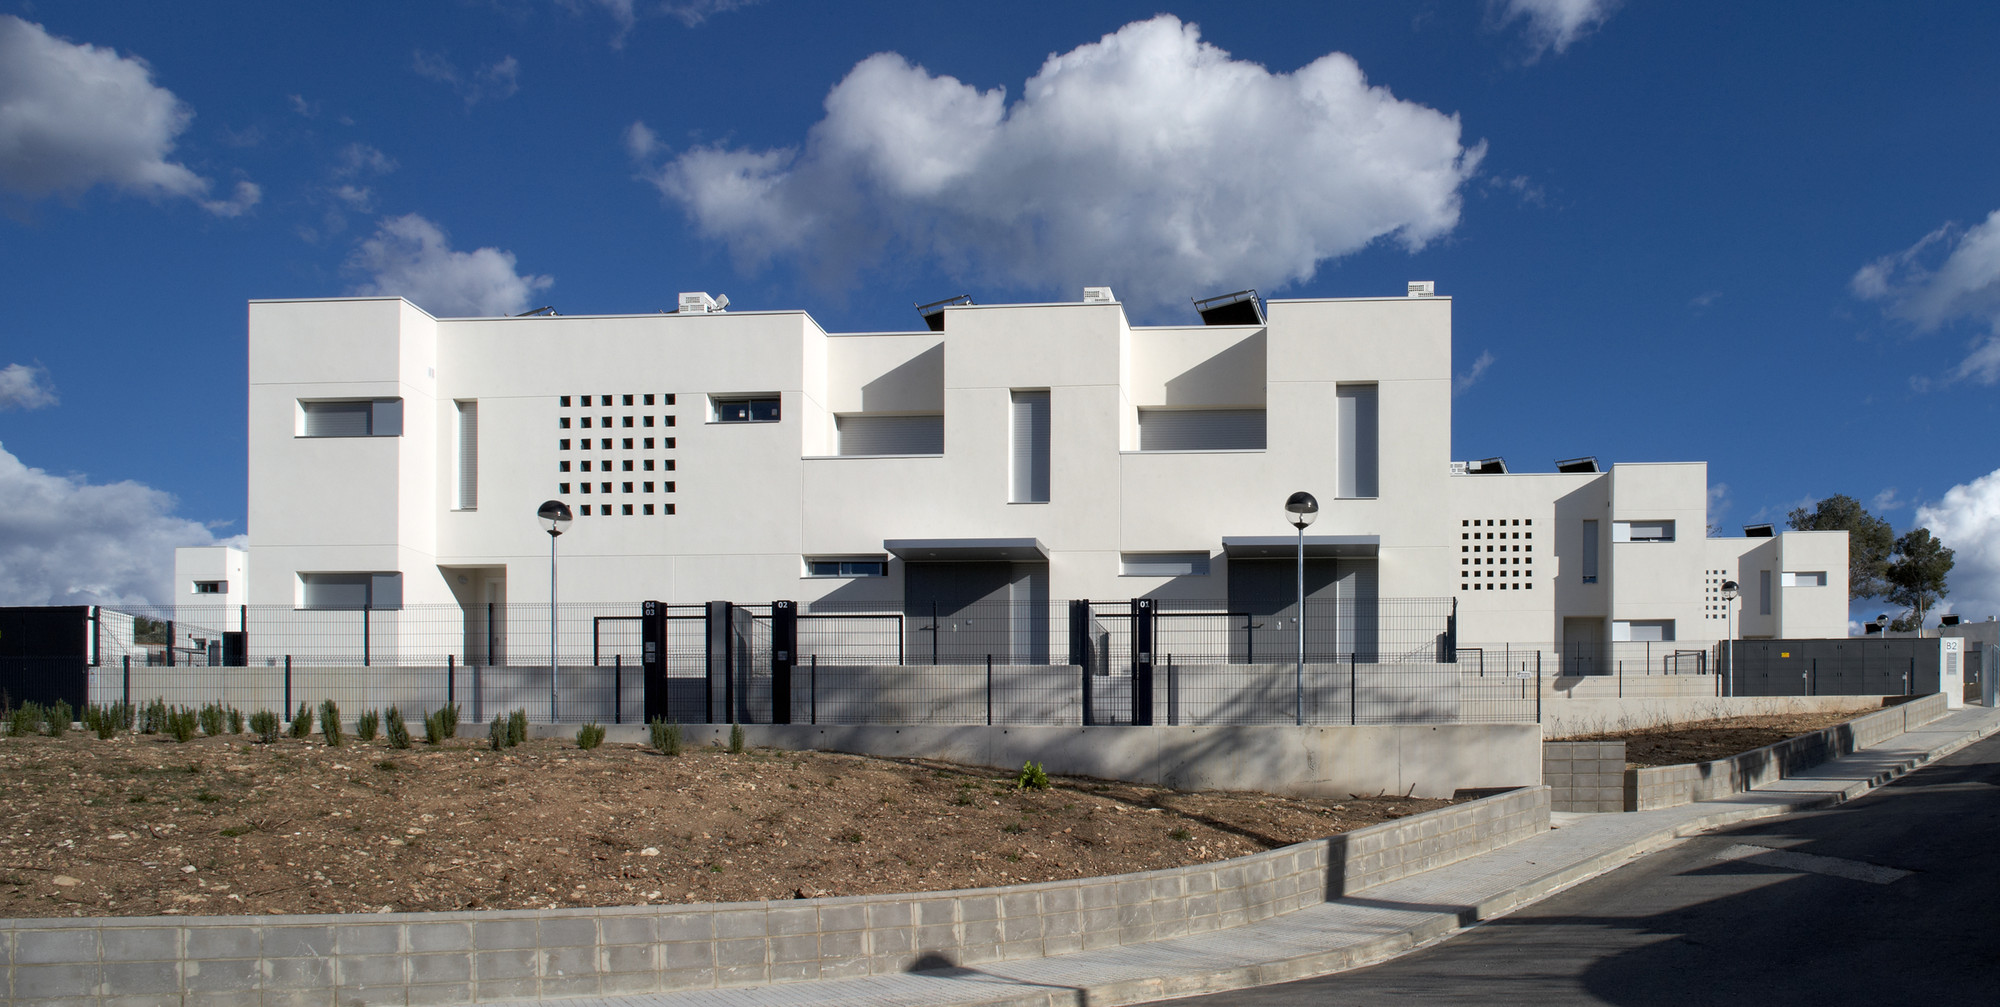 52 Social Housing in Tarragona  / aguilera|guerrero architects, © Pepo Segura